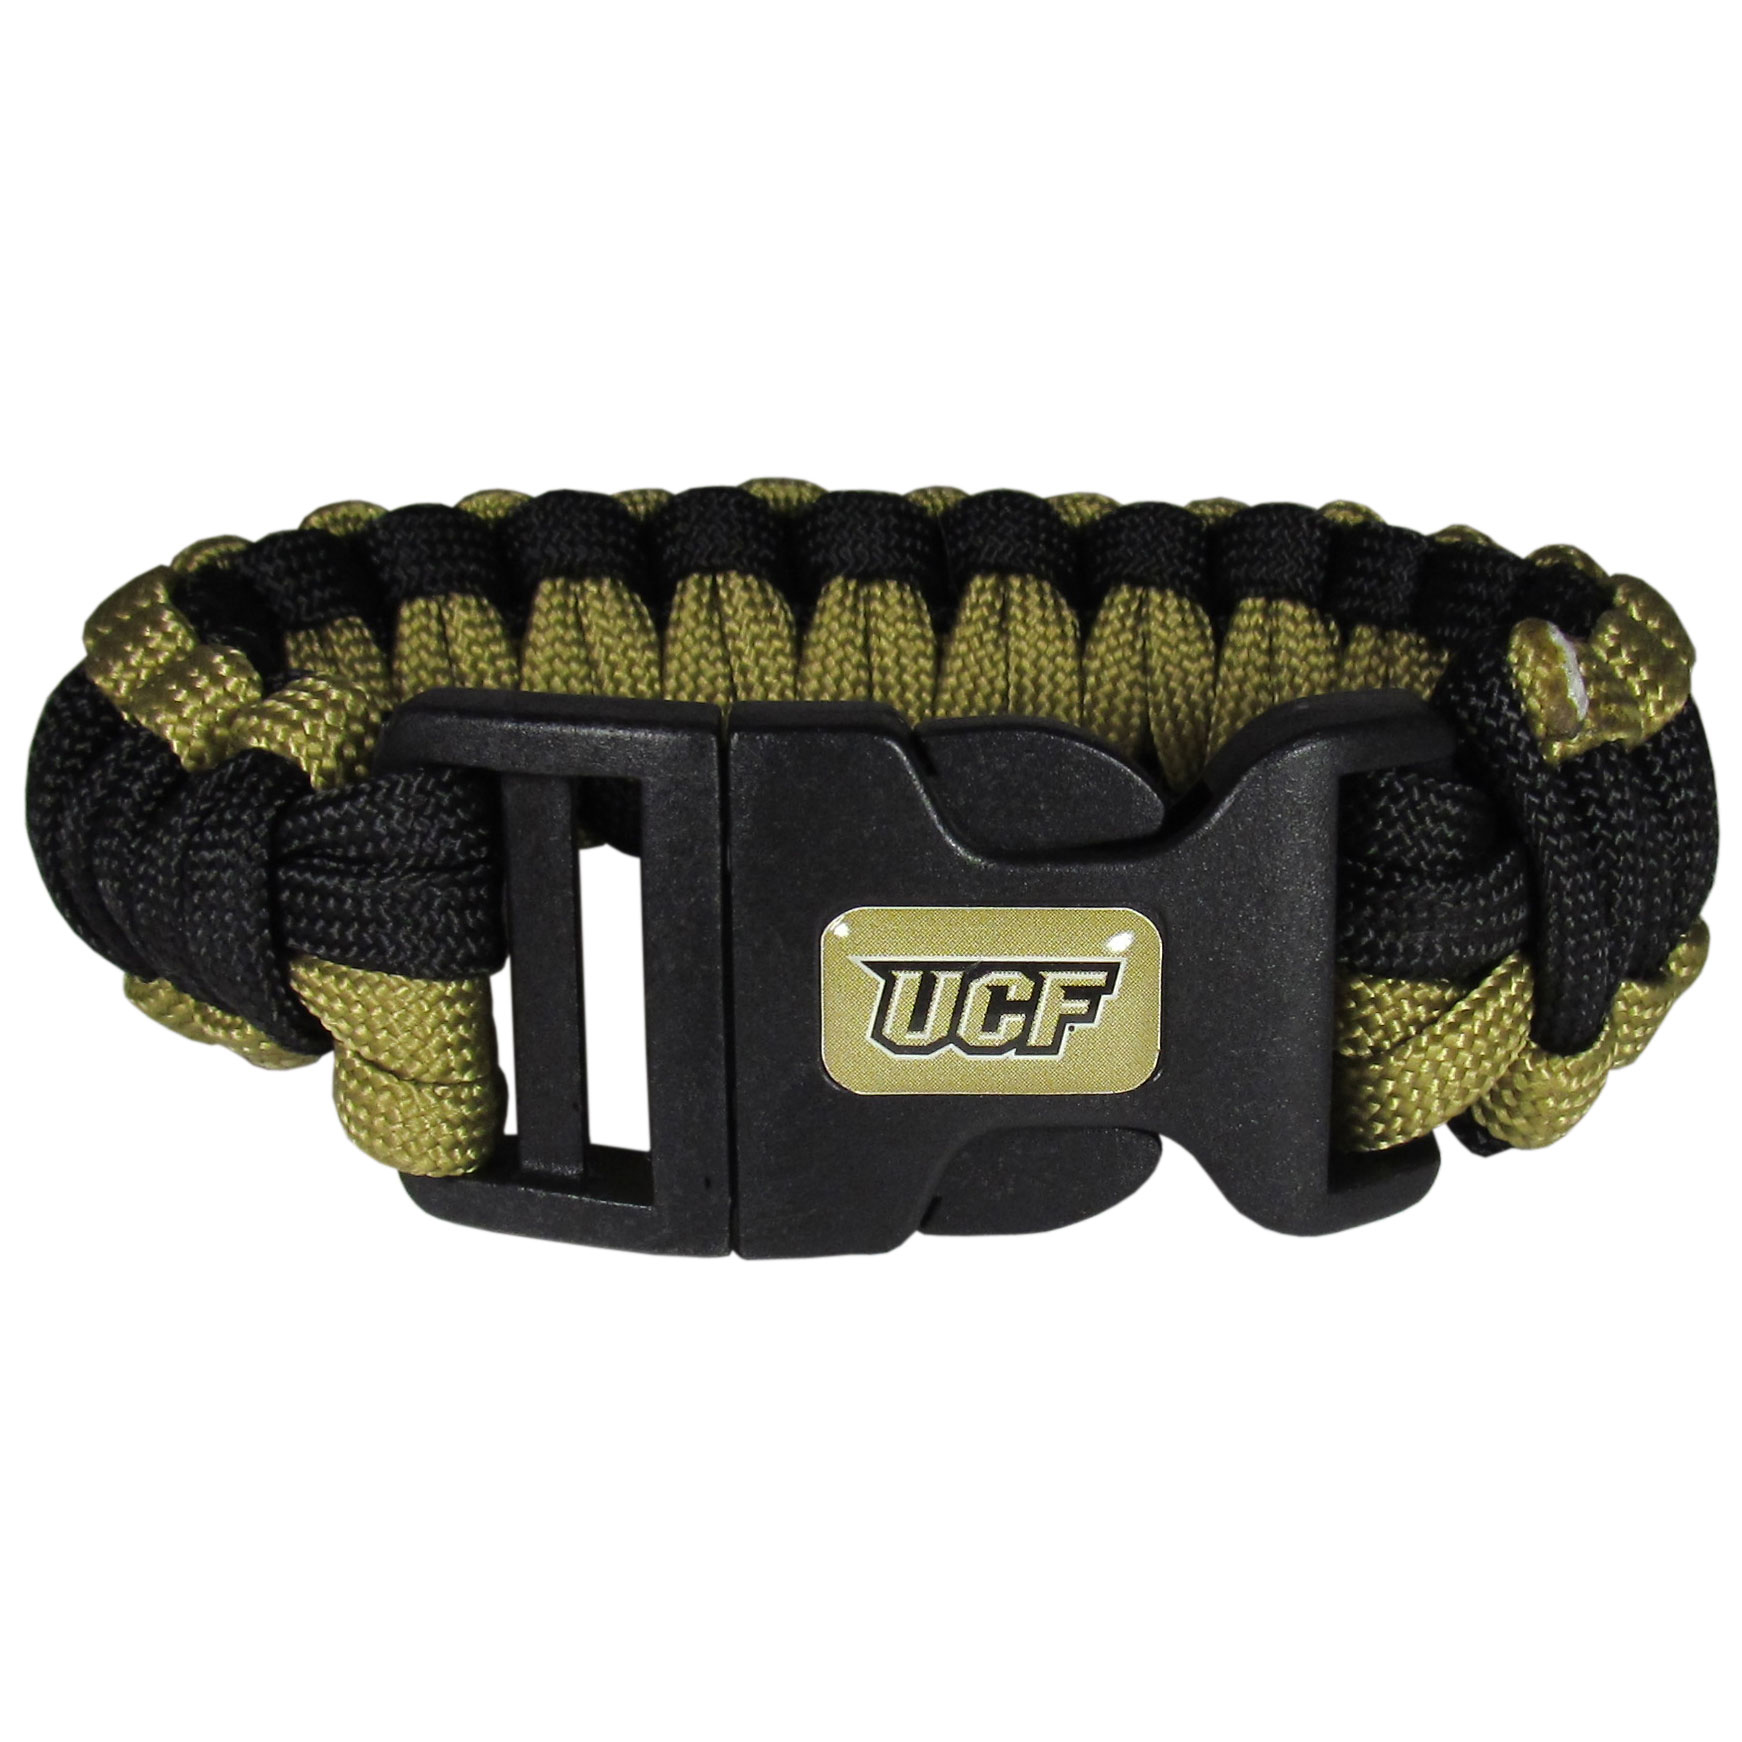 Central Florida Knights Survivor Bracelet - Our functional and fashionable Central Florida Knights survivor bracelets contain 2 individual 300lb test paracord rated cords that are each 5 feet long. The team colored cords can be pulled apart to be used in any number of emergencies and look great while worn. The bracelet features a team emblem on the clasp.